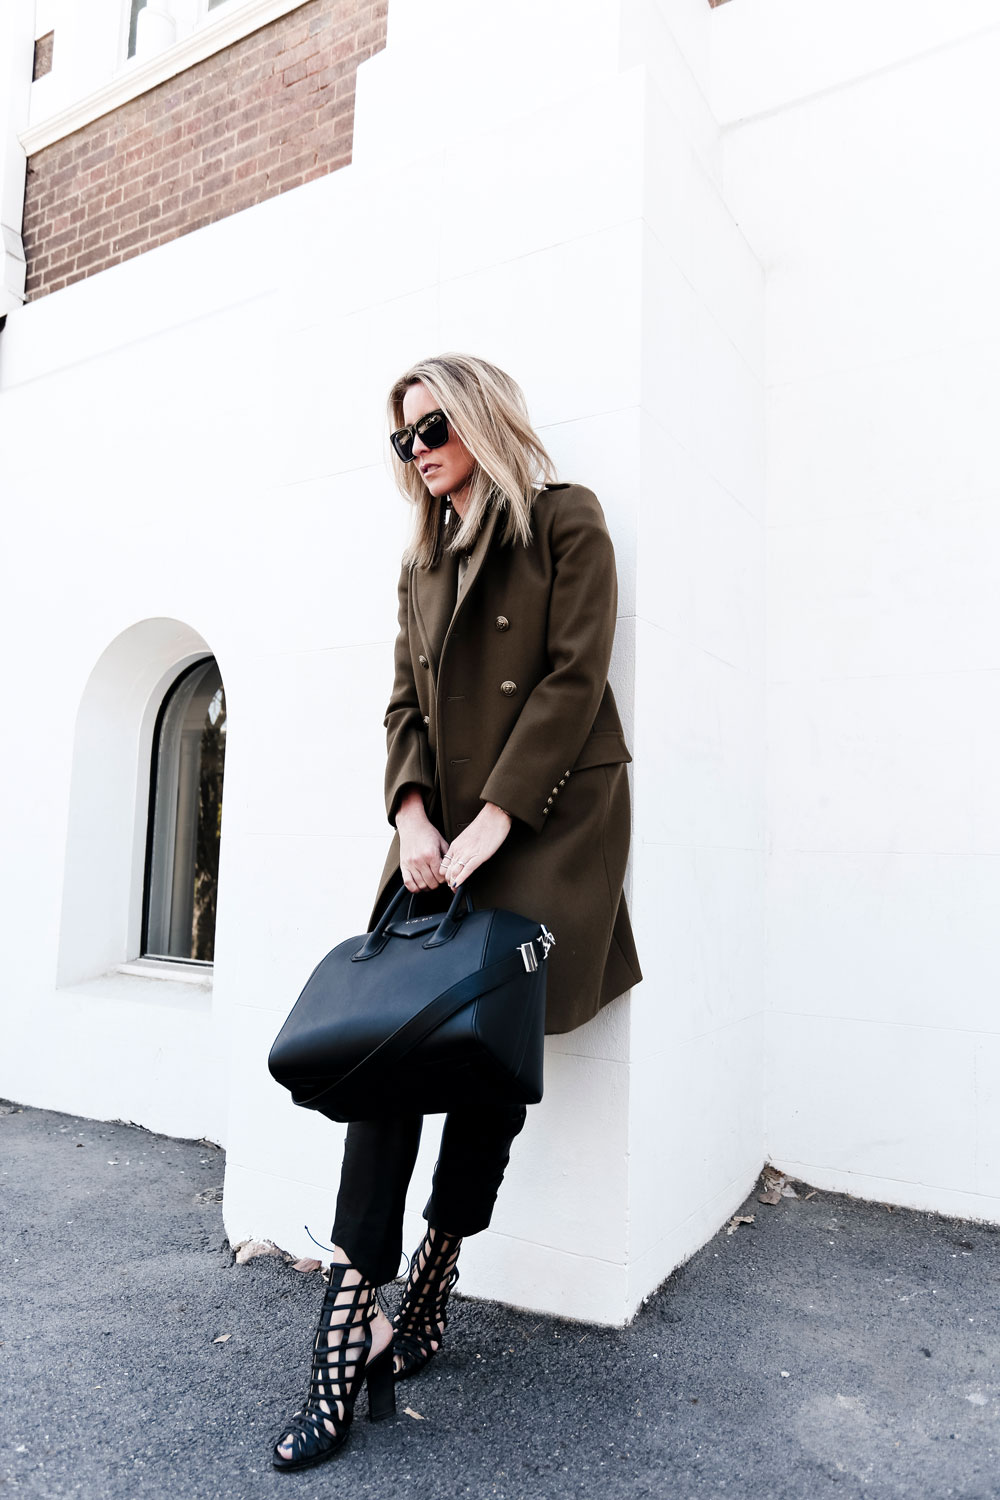 Street Style December 2014 Via Mandy Shadforth